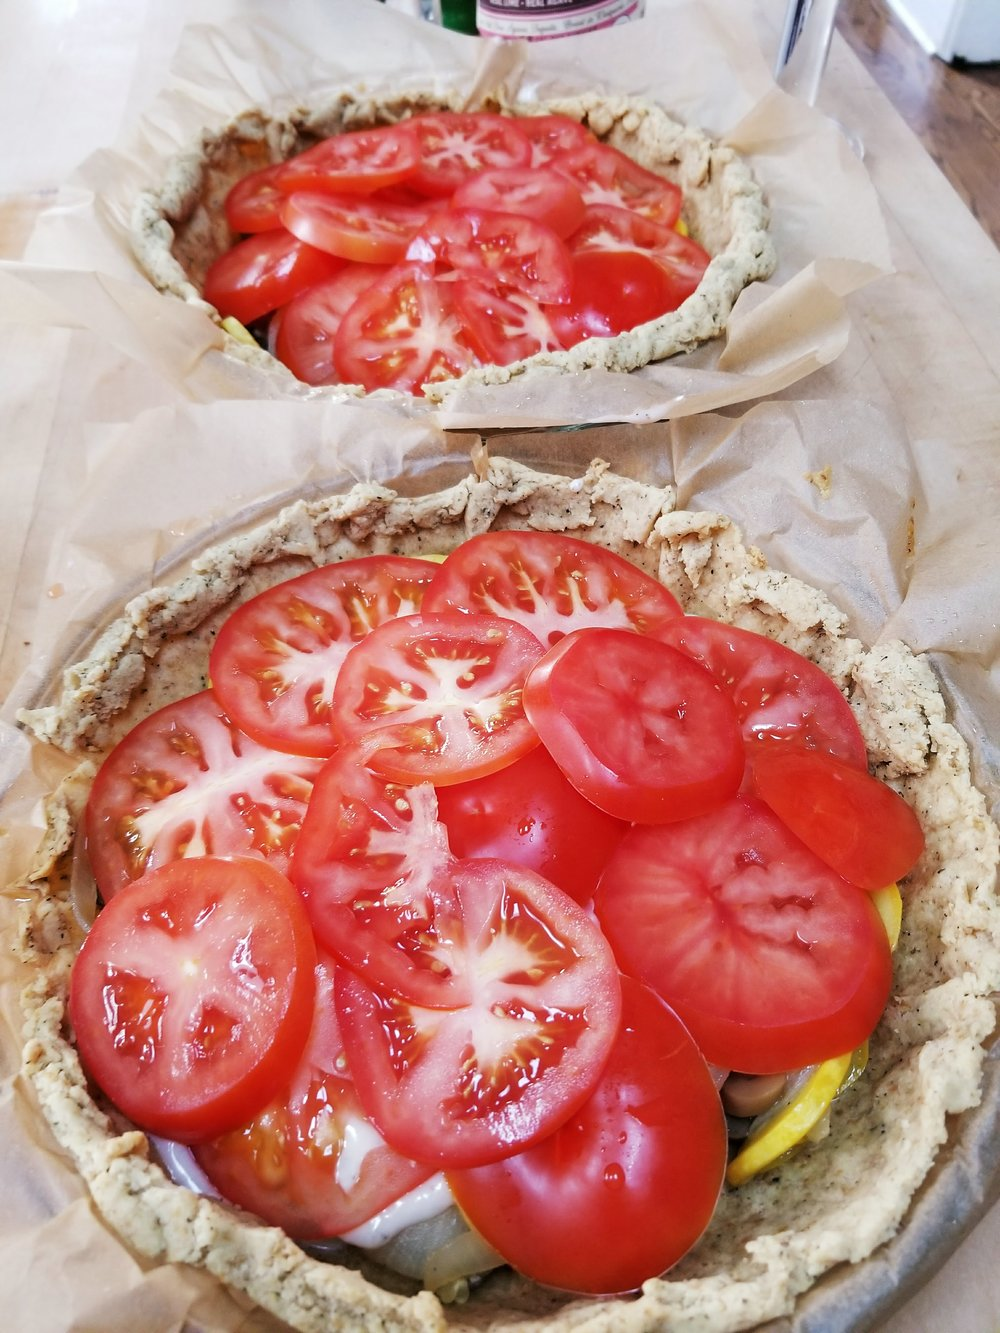 Layer two tomatoes to each pie on top of the sauce layer.